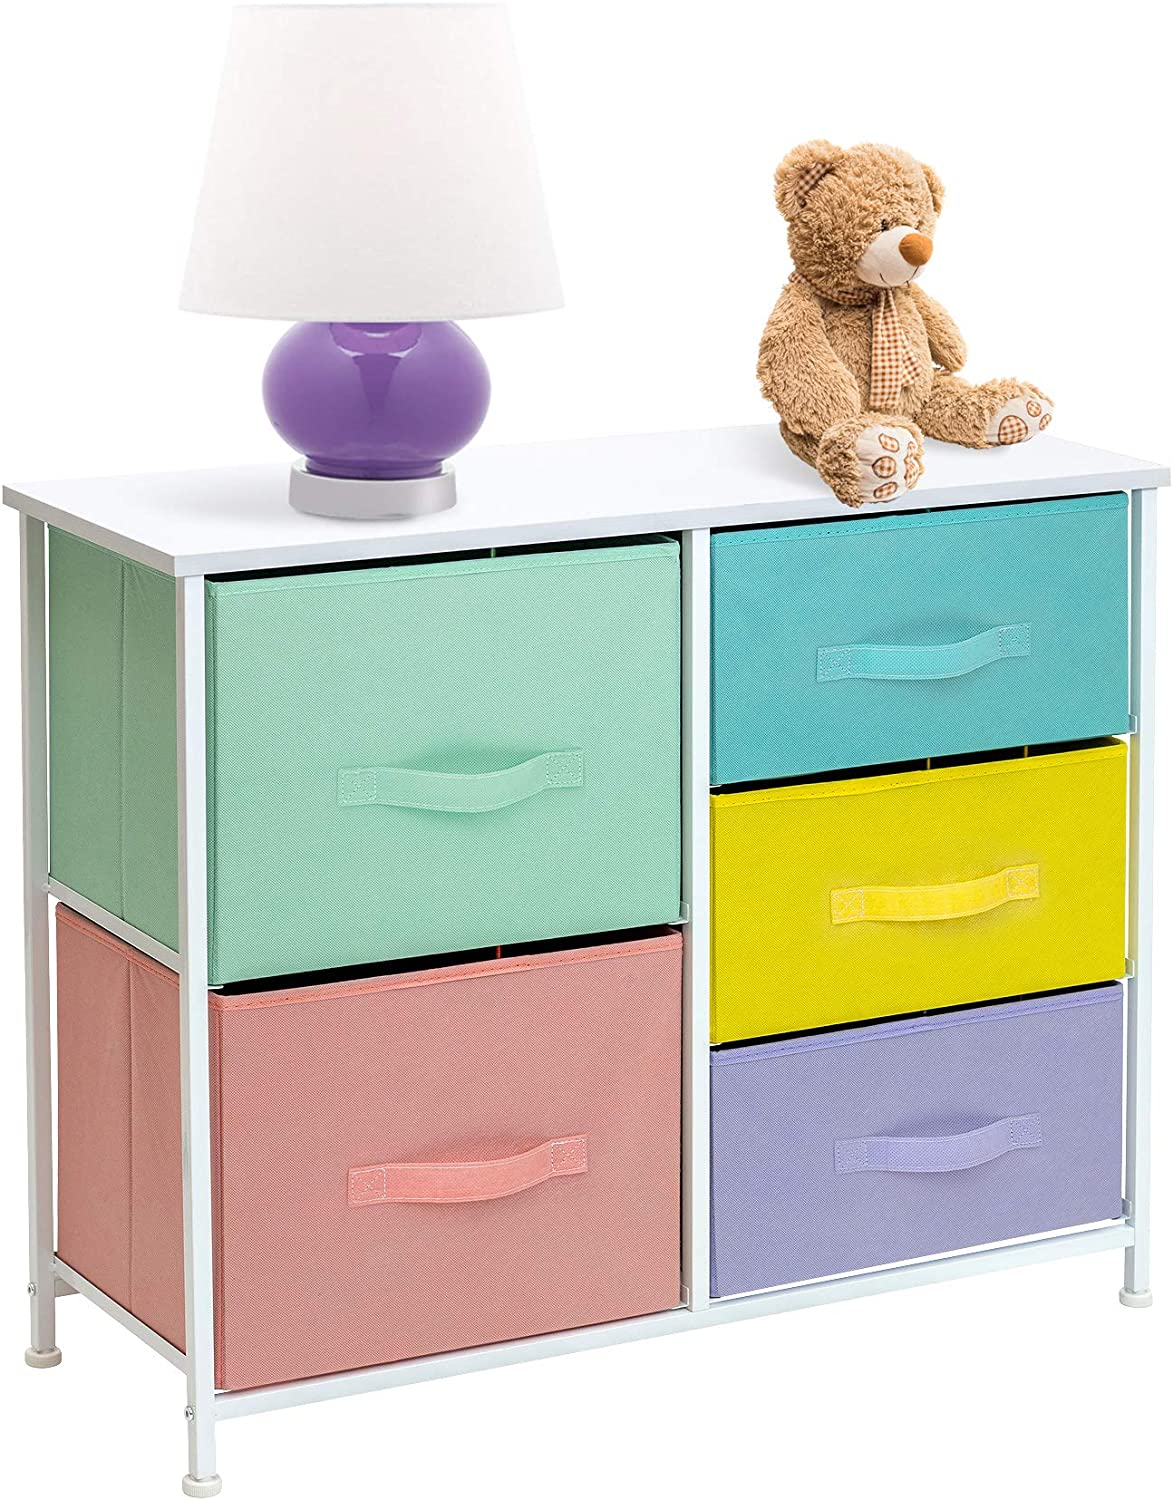 Sorbus Dresser with 5 Drawers Furniture Storage Tower Chest for Kid's, Teens, Bedroom, Nursery, Playroom, Closet, Clothes, Toy Organization-Steel Frame, Wood Top, Easy Pull Fabric Bins (Pastel)